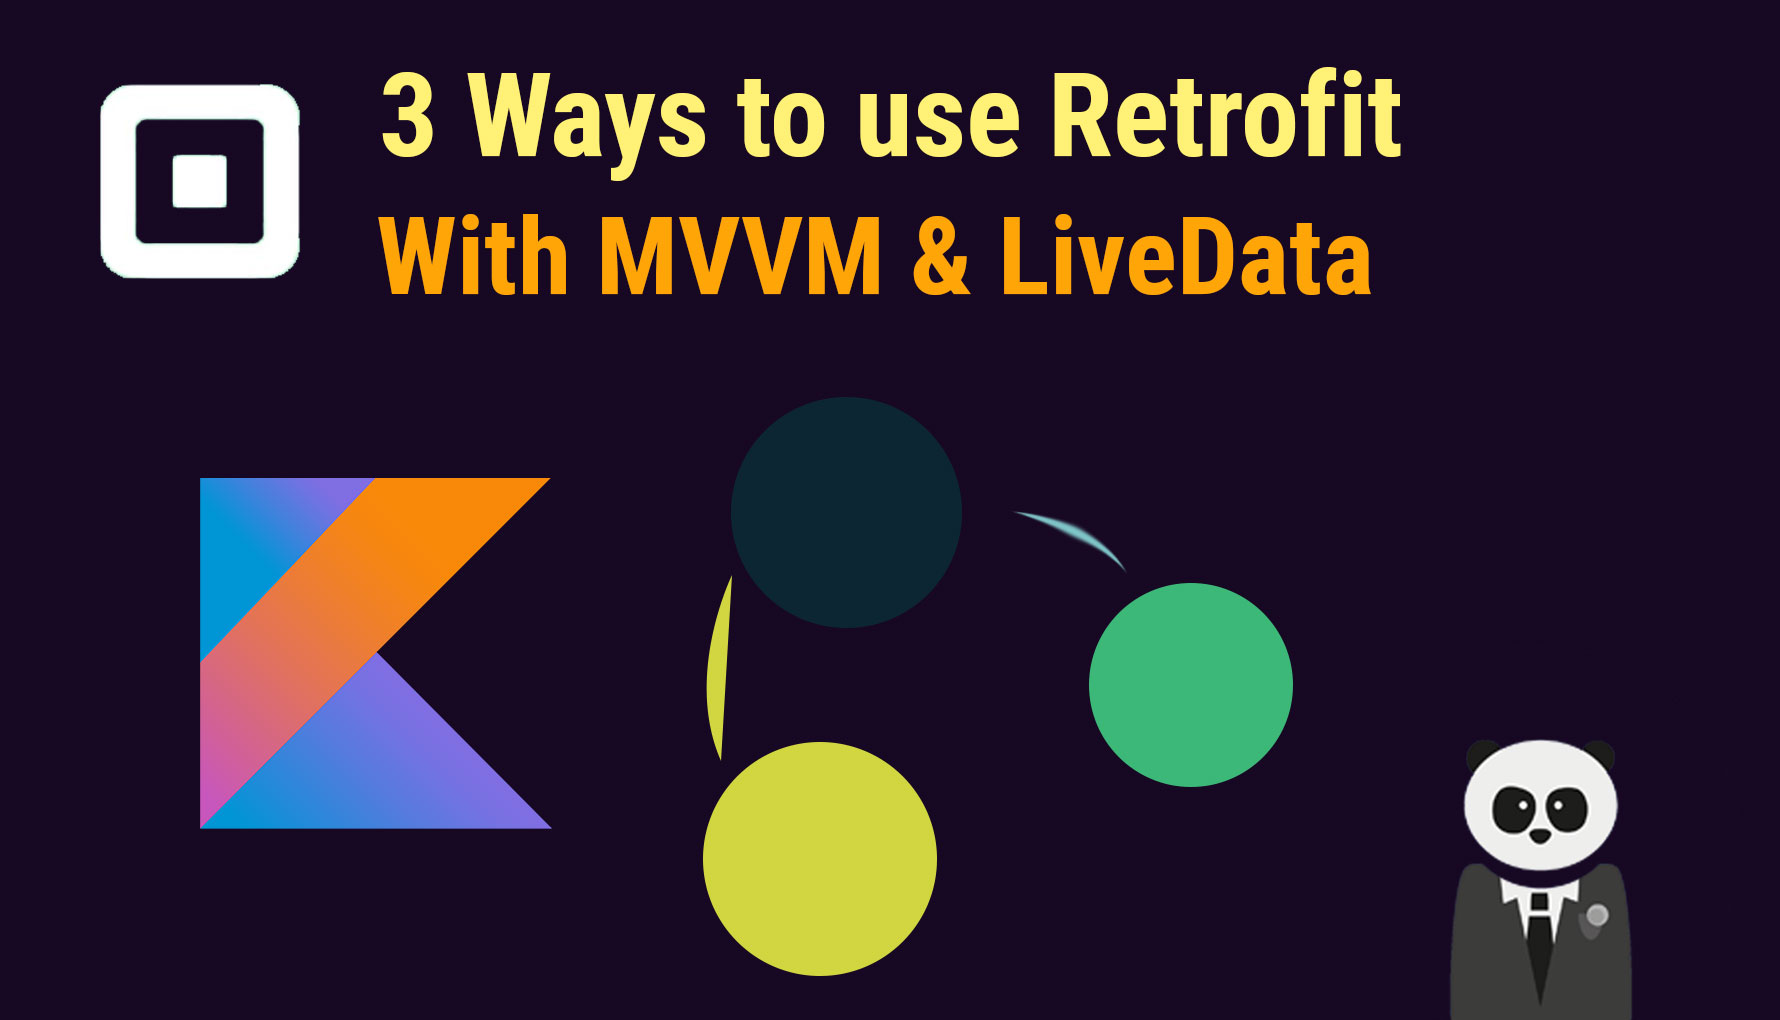 3 Ways to use Retrofit with LiveData in the MVVM Android Architecture